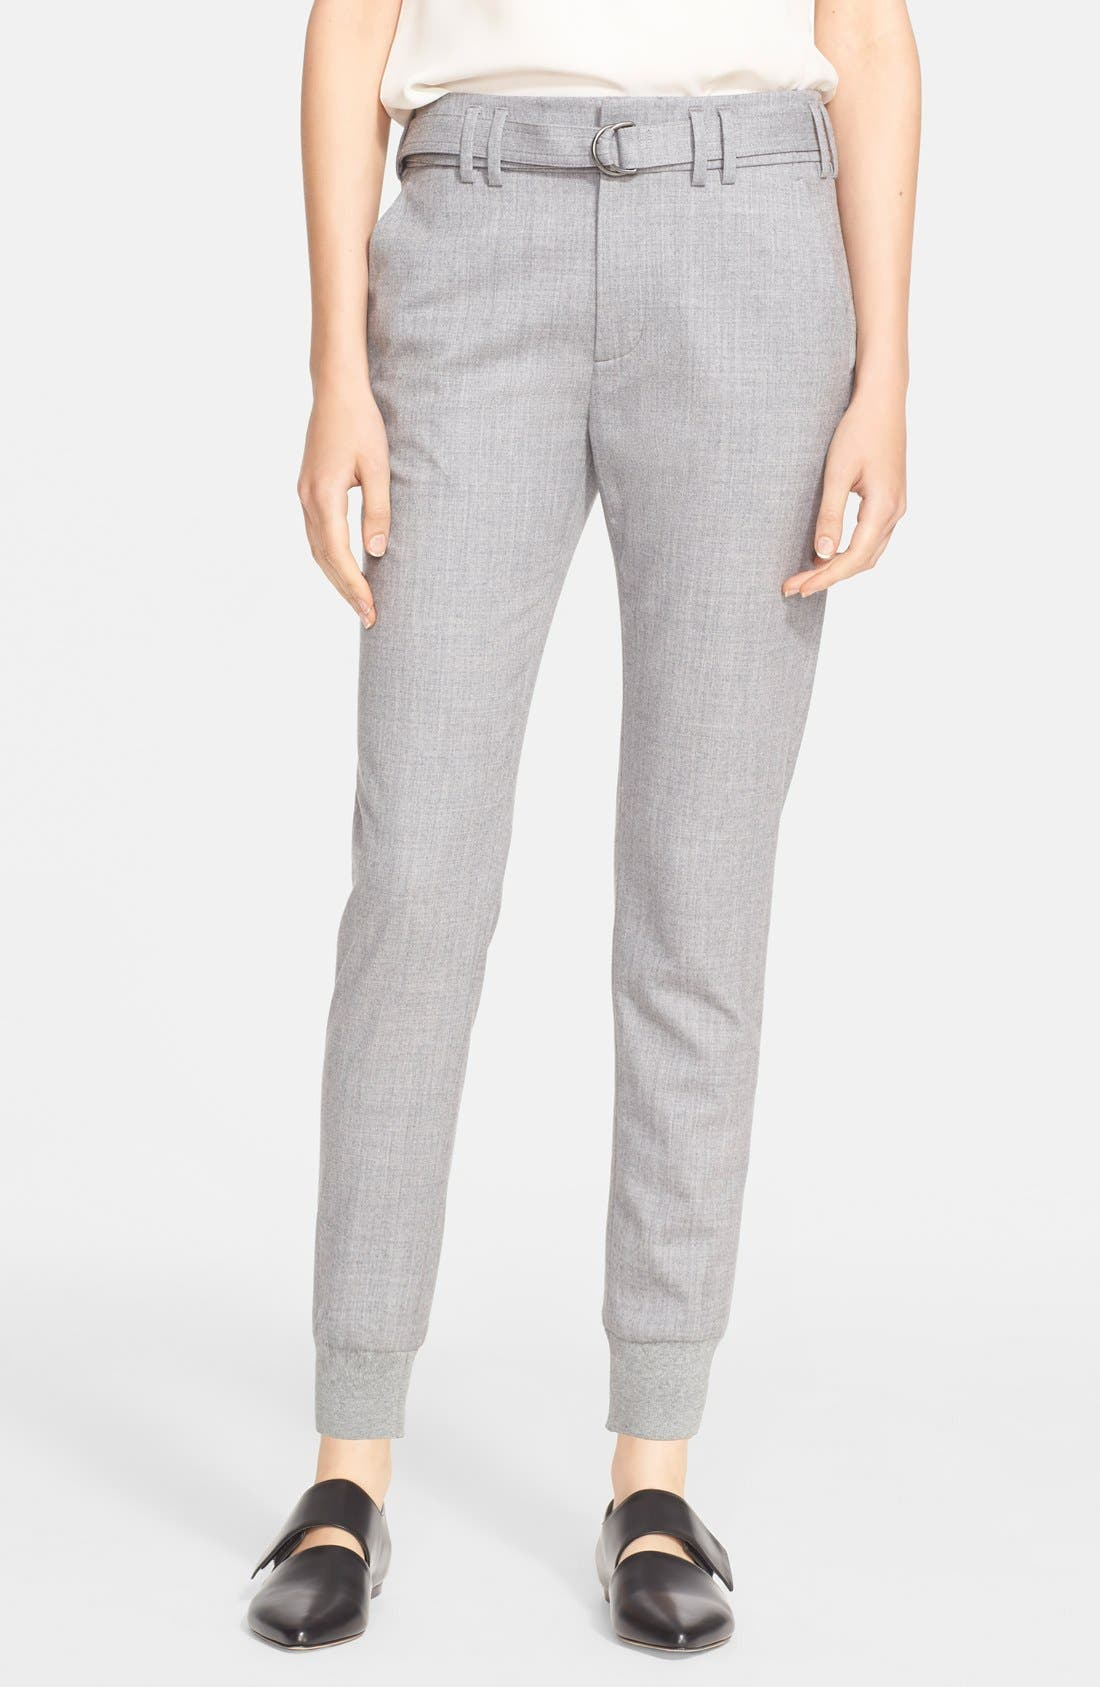 Belted Rib Cuff Jogger Pants,                         Main,                         color, Light Heather Grey